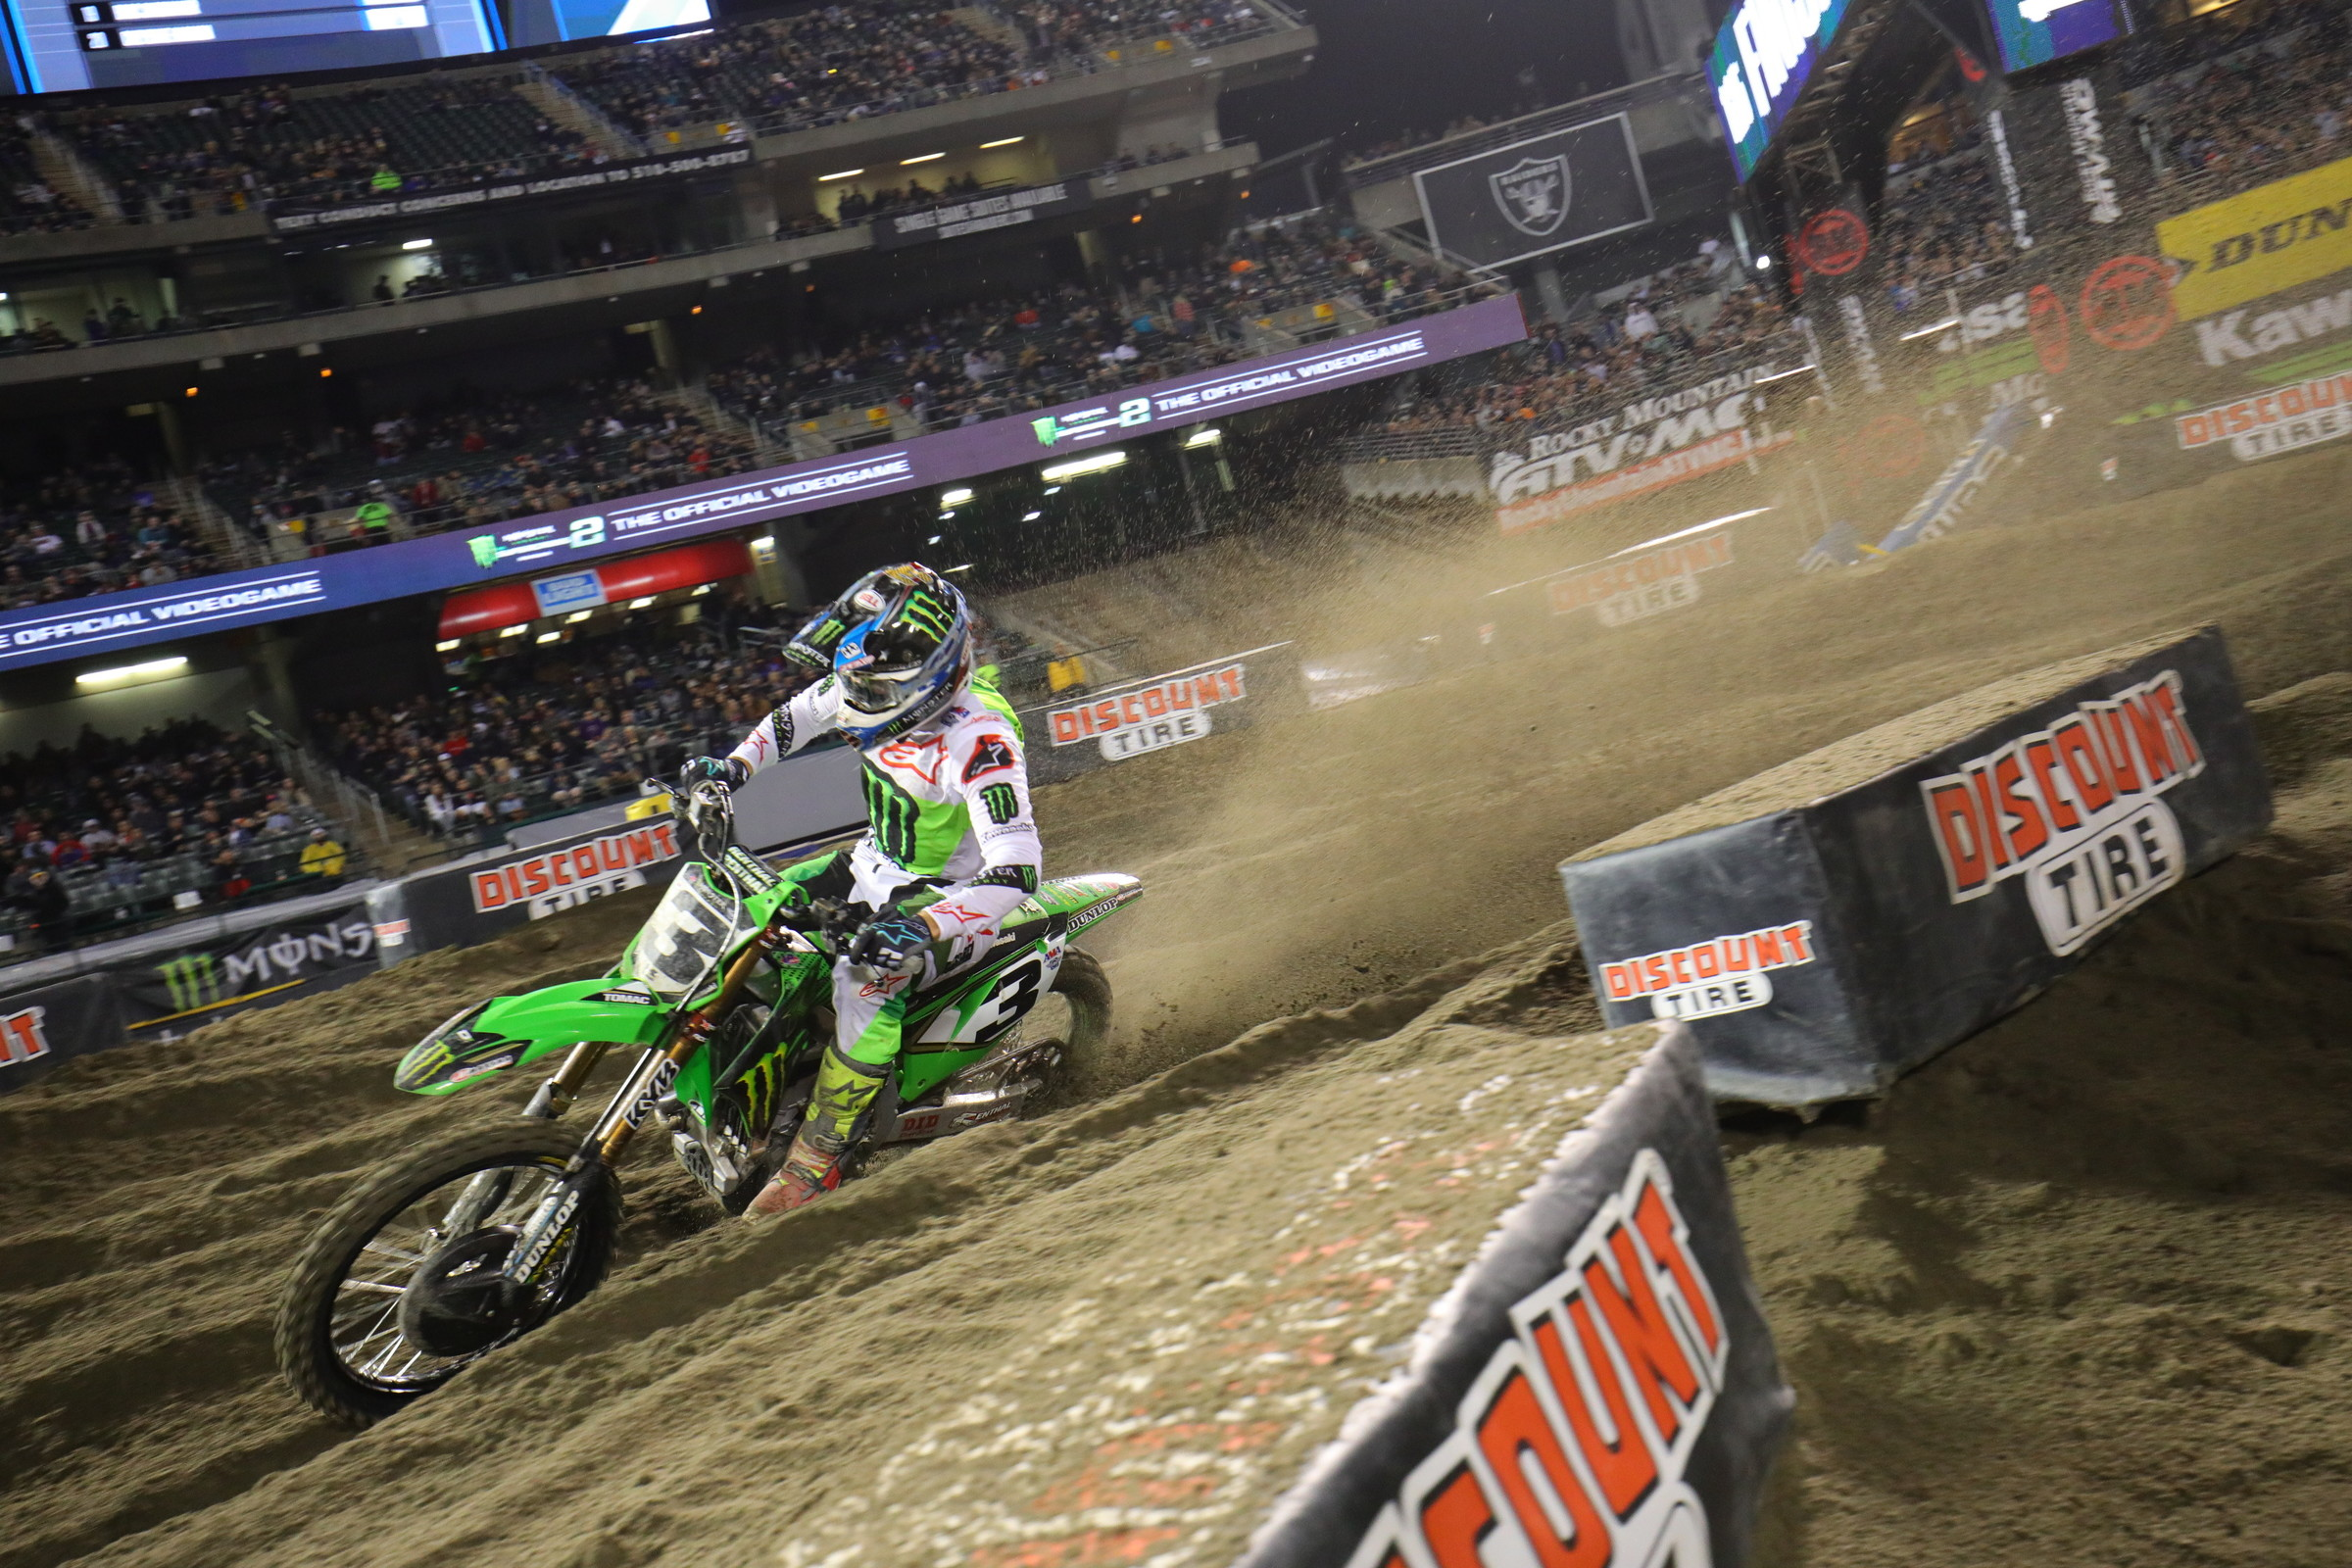 Monster Energy Kawasaki had a good night in the heat races. Eli Tomac won one and Joey Savatgy won the other.